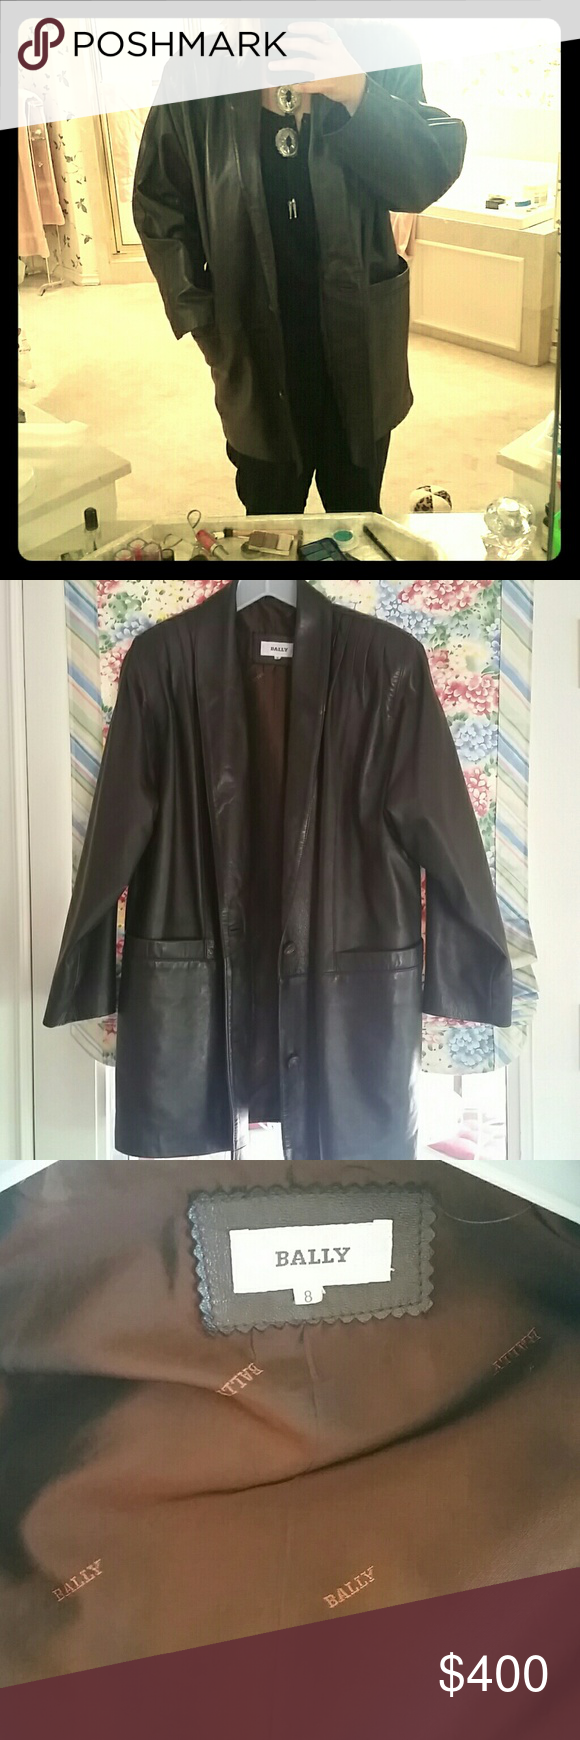 Bally Vintage Dark Brown Leather Coat 100% leather with silk lining. Dark brown and medium length with two pockets. Size 8. Size medium. A little bigger than it looks. Very very comfortable and in almost perfect condition! Has buttons as well. Made in Italy. bally Jackets & Coats